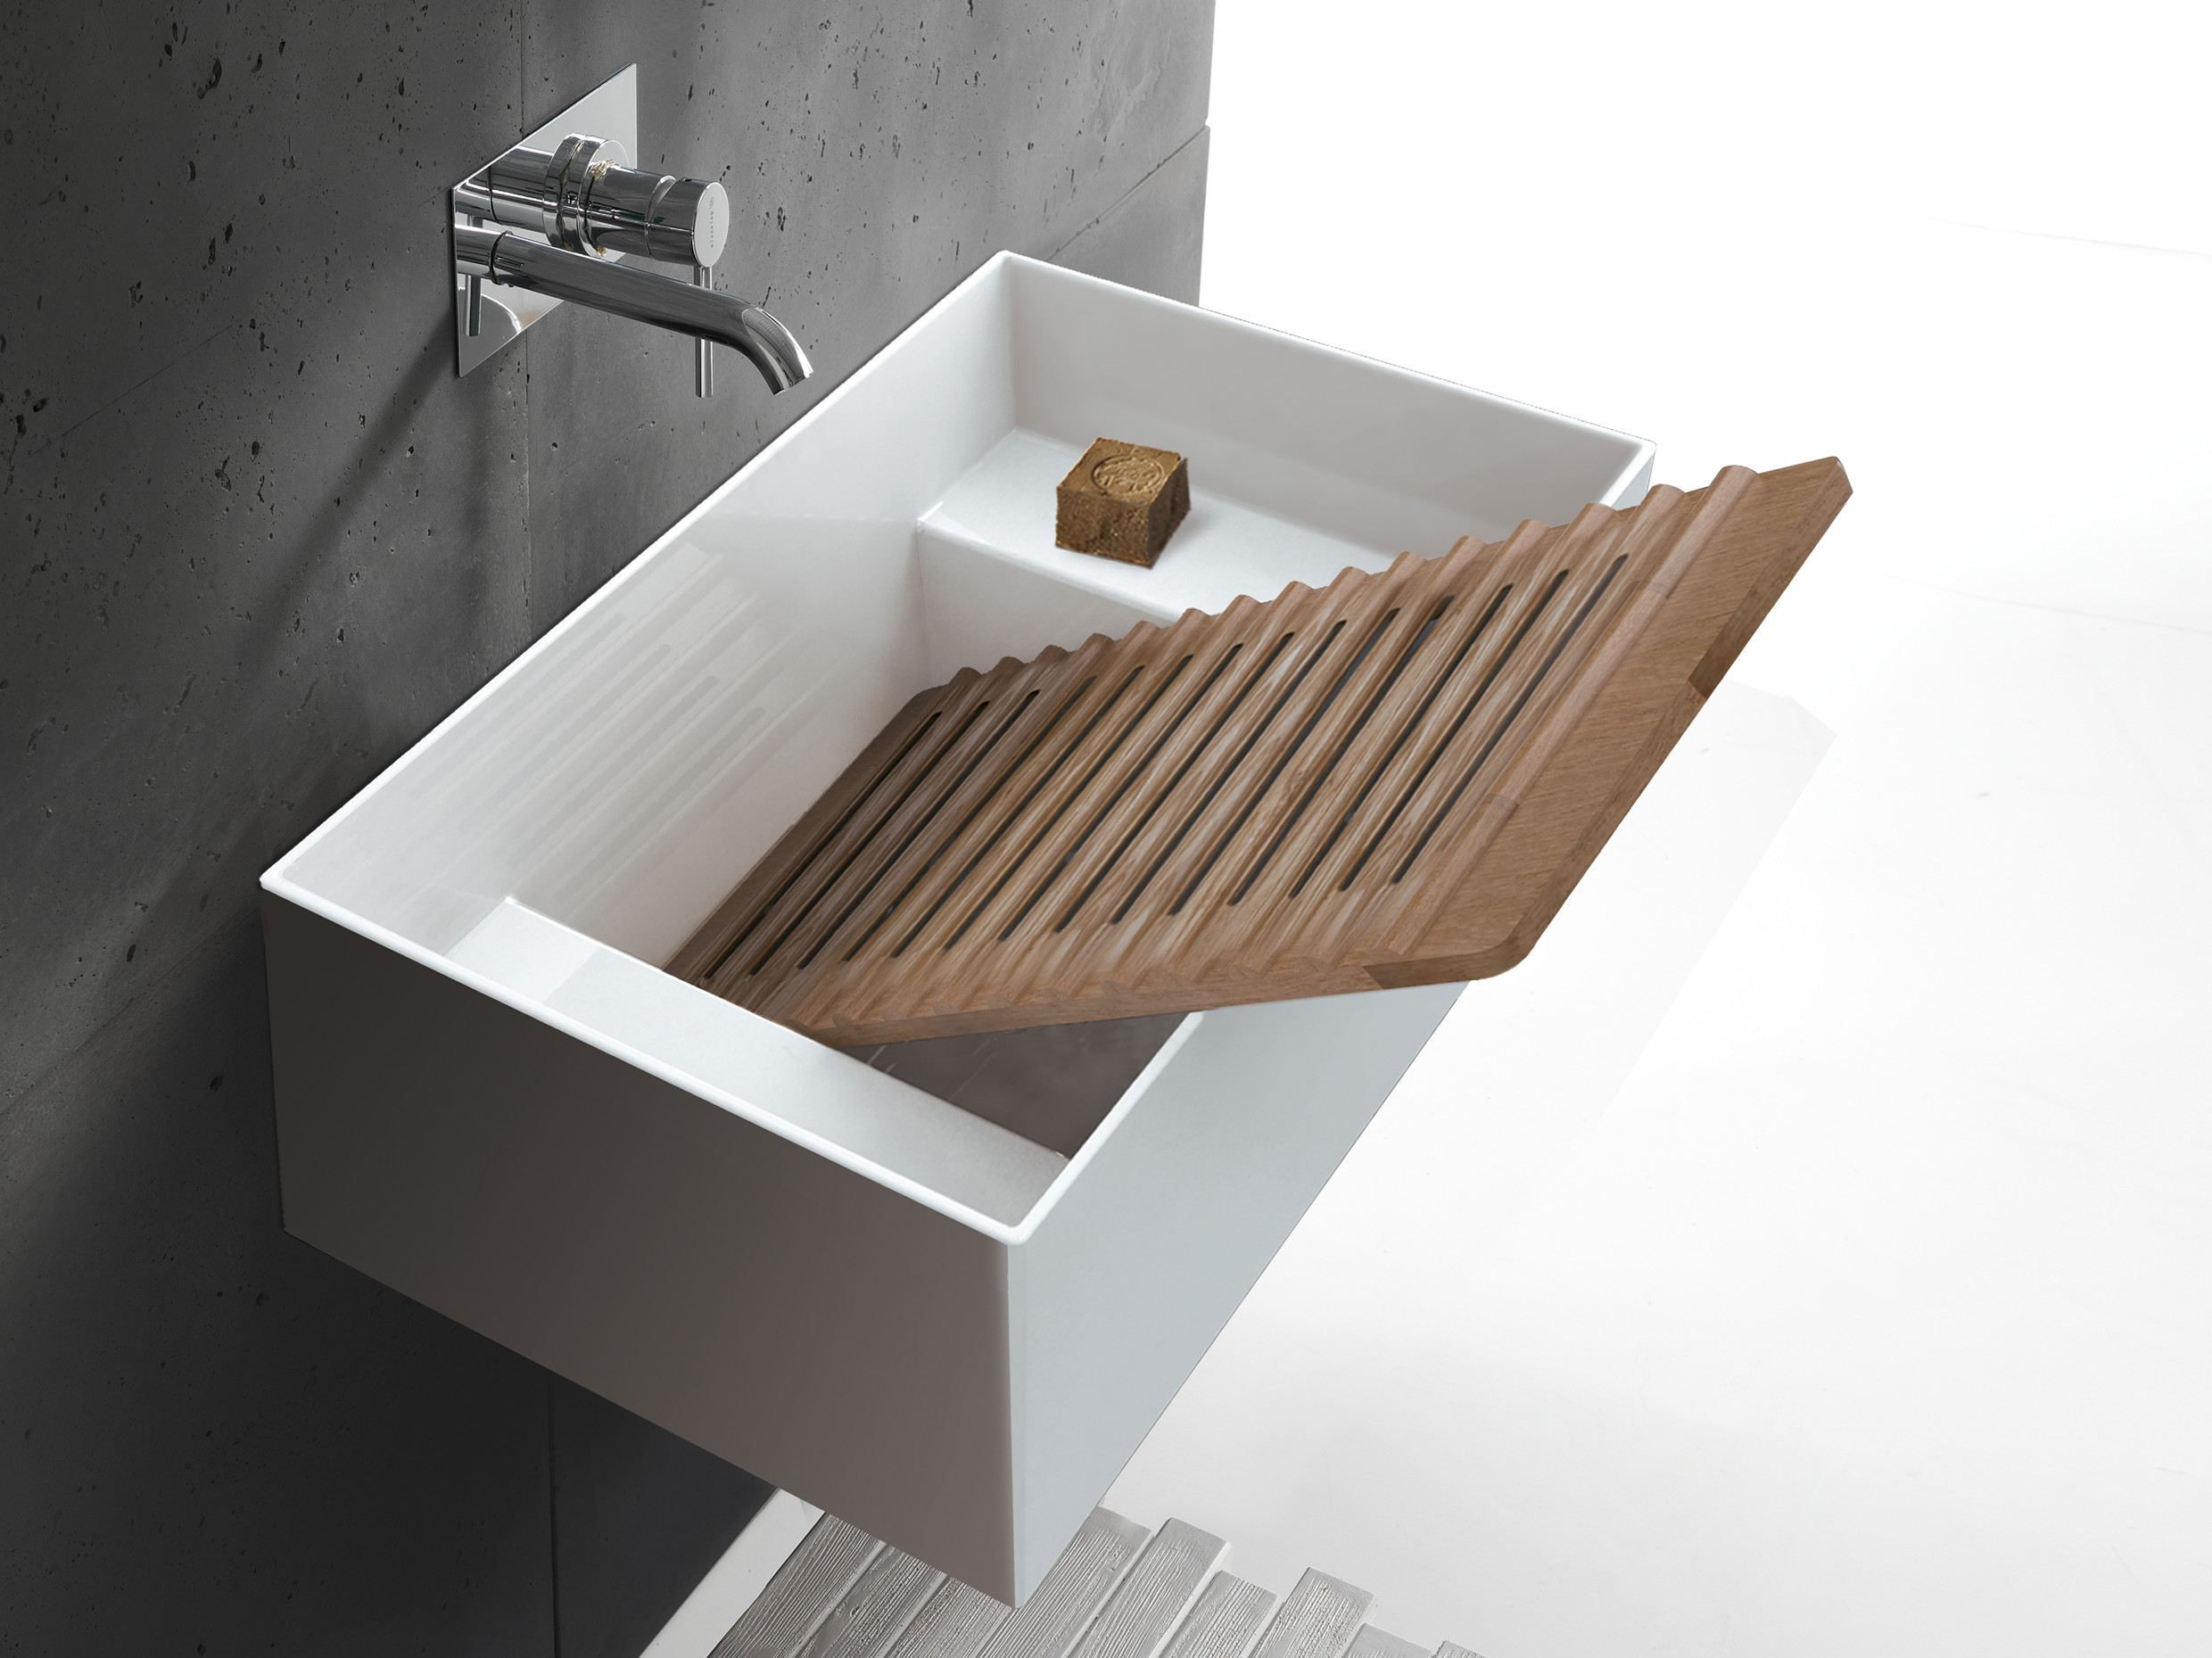 Lavabo Bagno Prezzi Economici download the catalogue and request prices of meg11 by